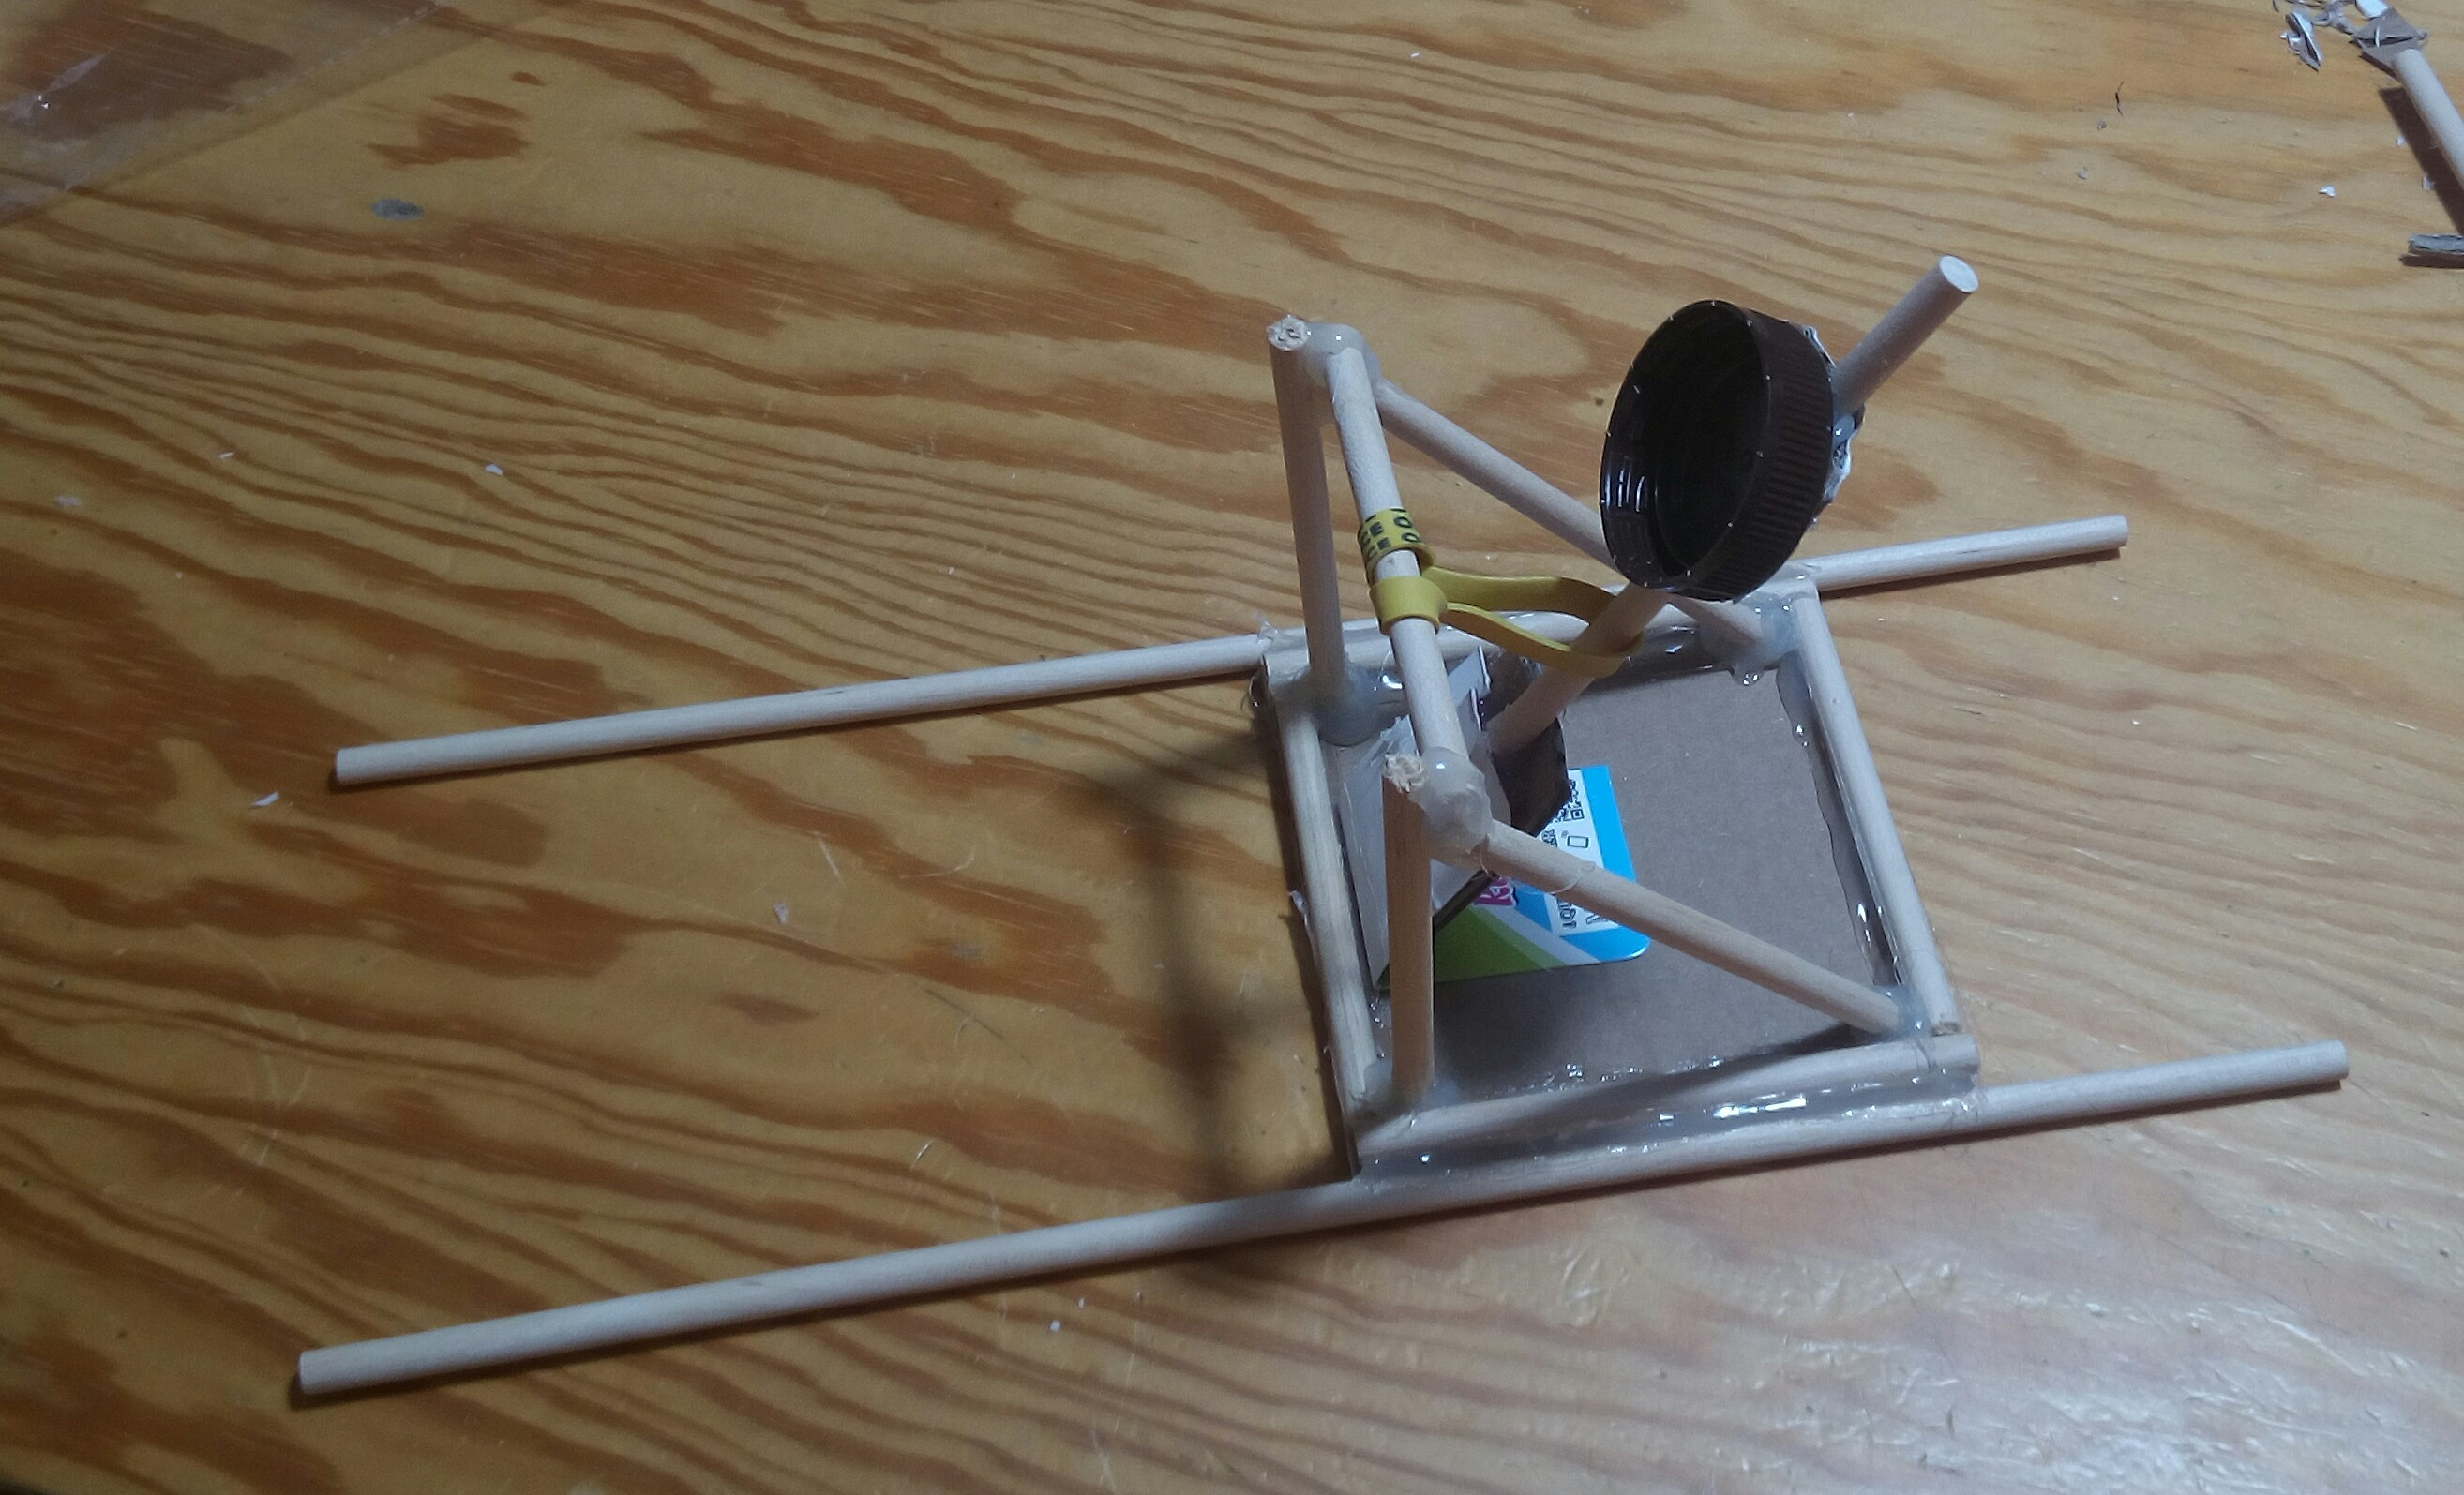 Picture of Finish With the Launcher Stick and the Projectile Holder. You Have a New Fully Functional Catapult. Enjoy!